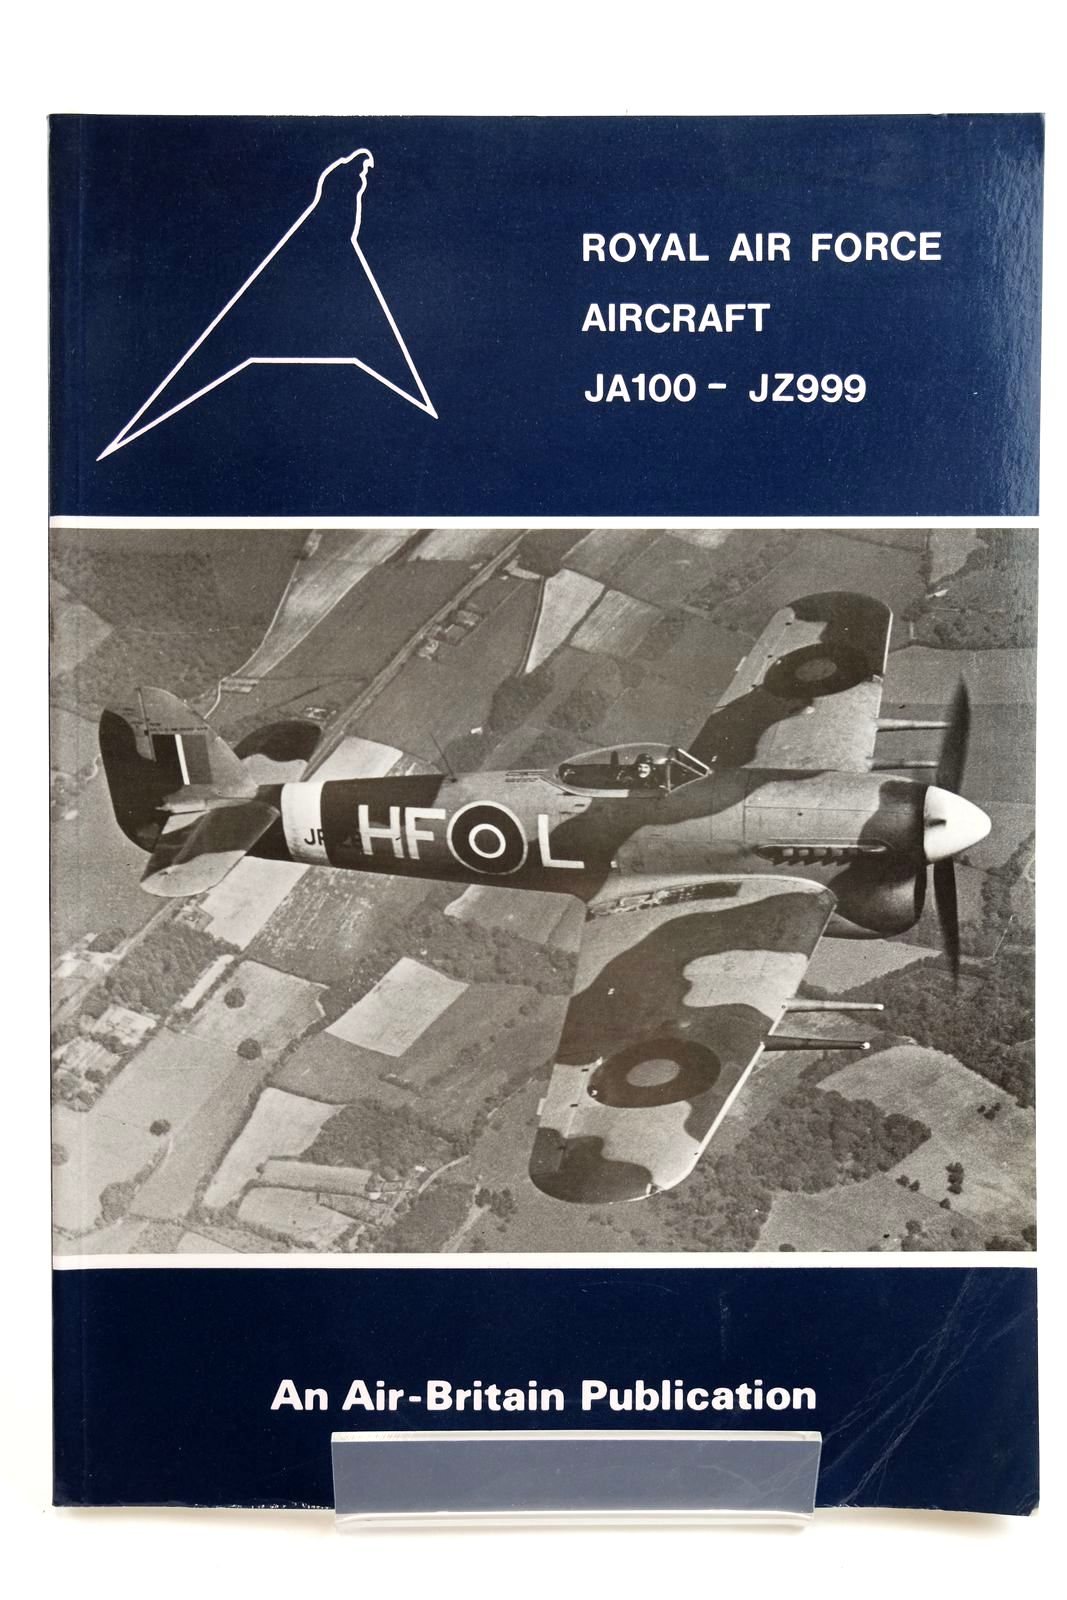 Photo of ROYAL AIR FORCE AIRCRAFT JA100 - JZ999 written by Halley, James J. published by Air-Britain (Historians) Ltd. (STOCK CODE: 2132209)  for sale by Stella & Rose's Books